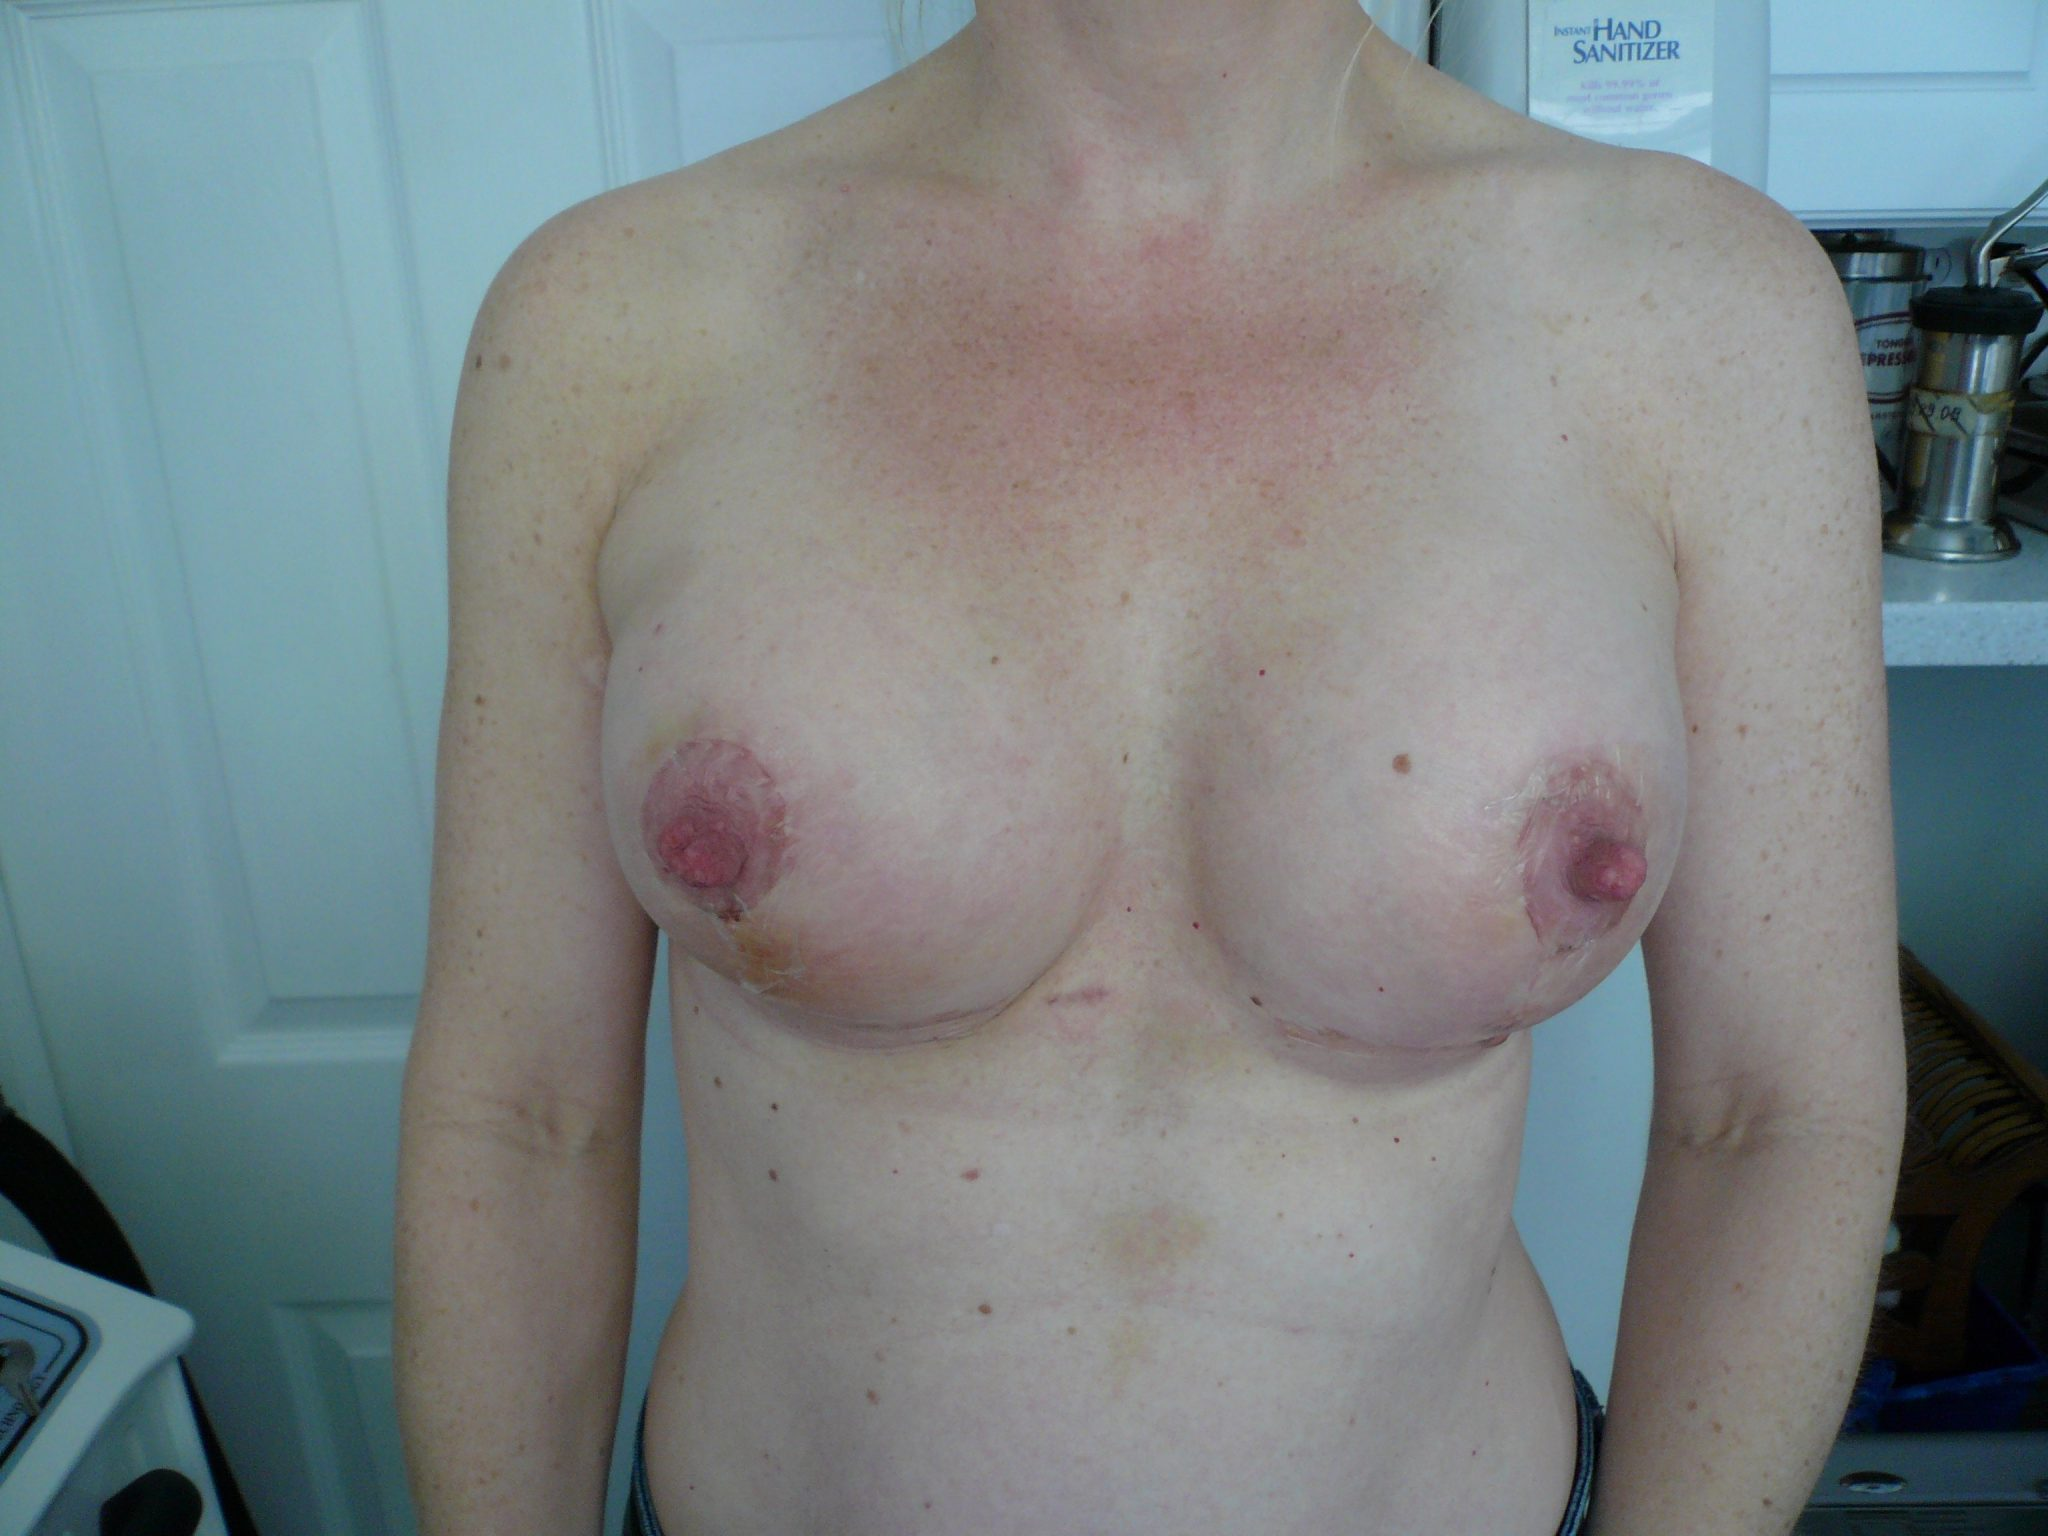 Post operative picture of symmetric breast following mastopexy breast lift with augmentation creating symmetric and nice sized areola and full rounded breast